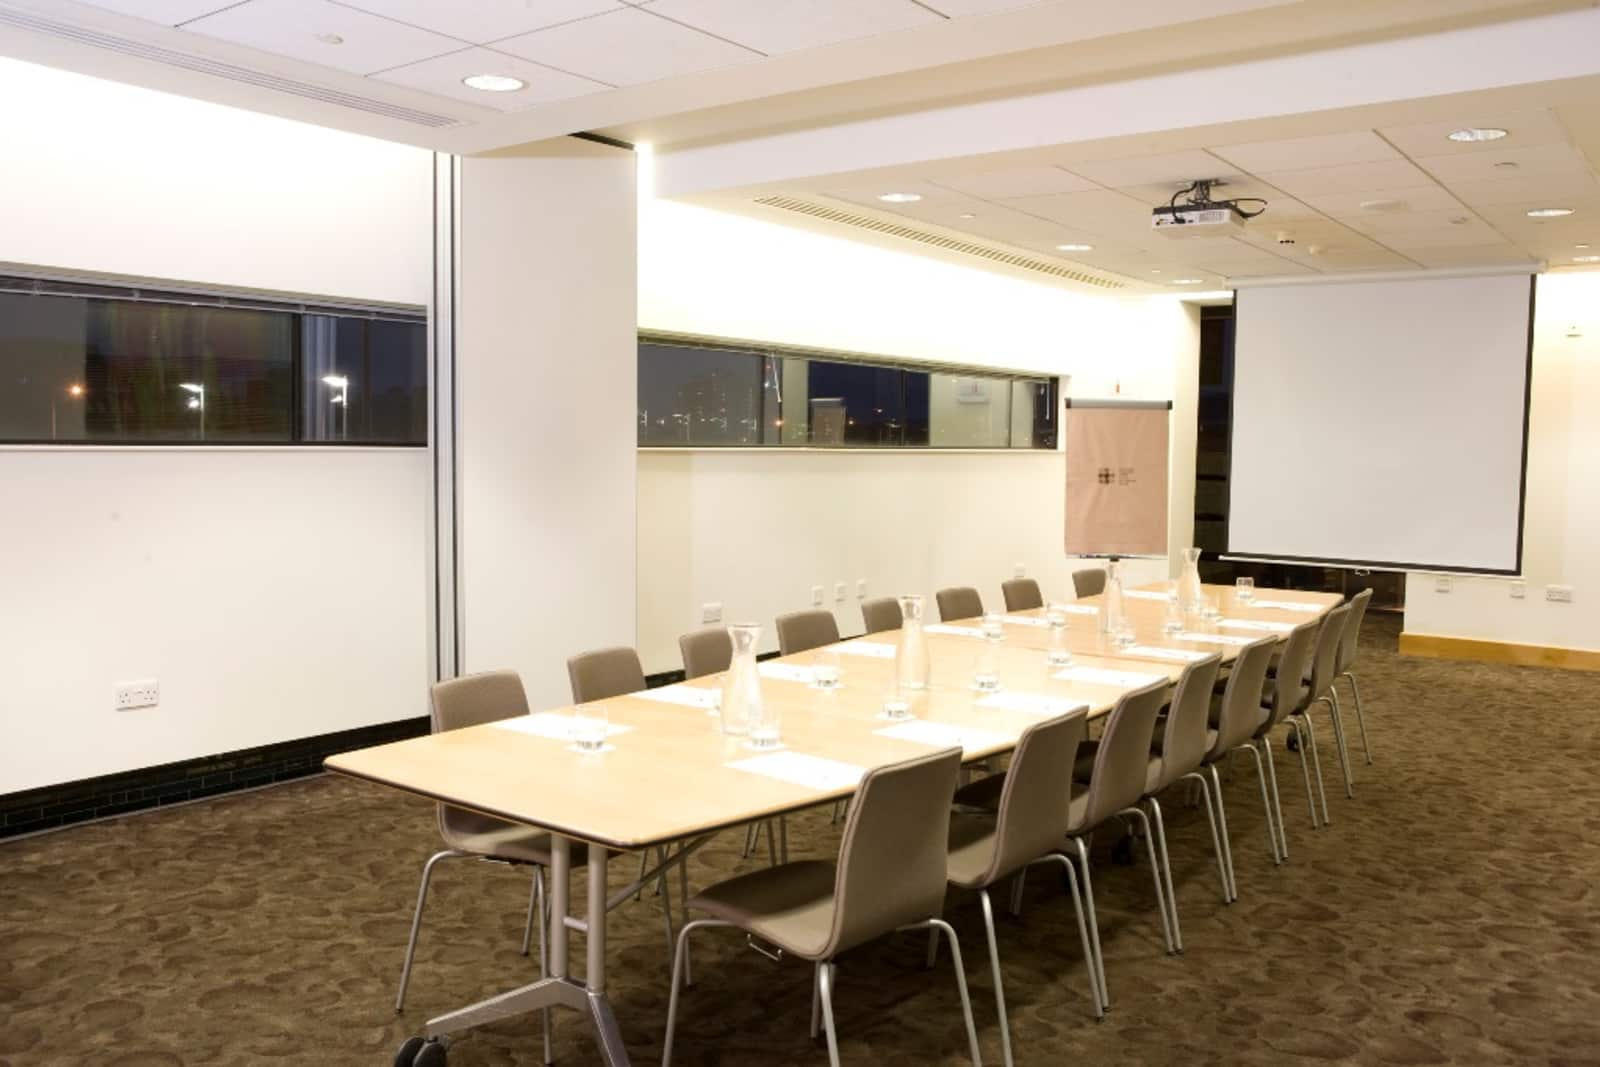 Boardroom layout for 16 people